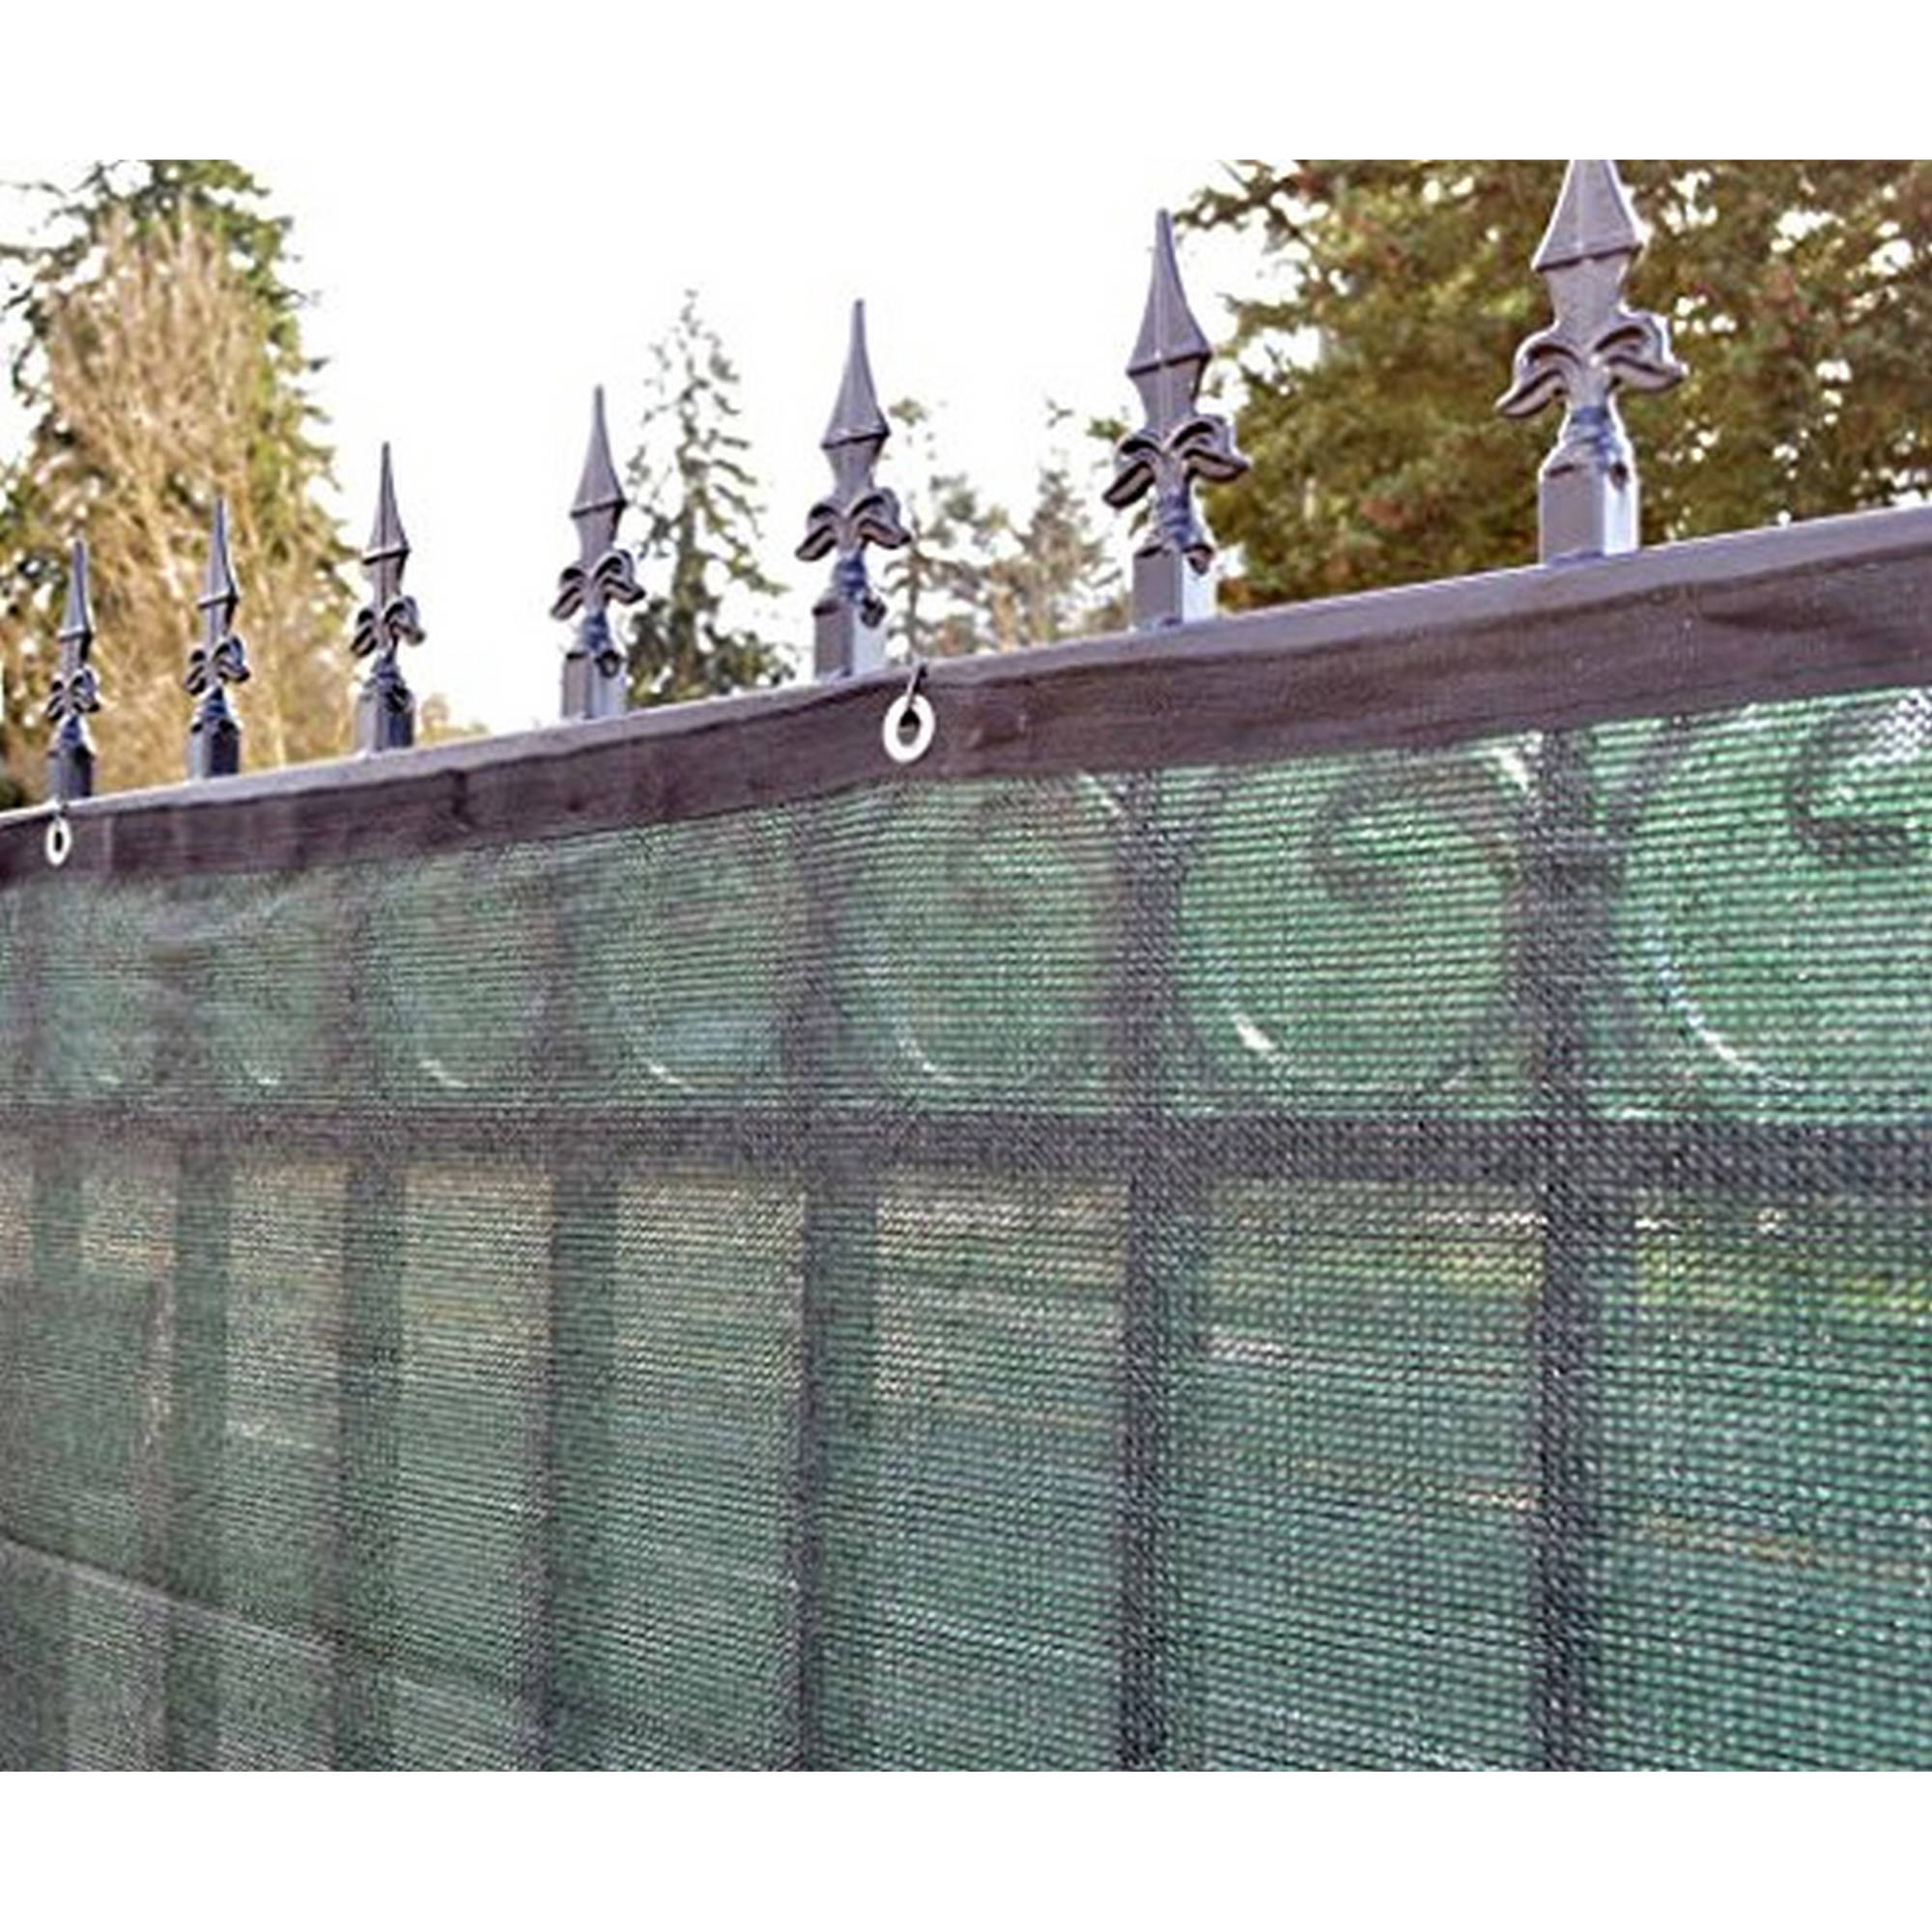 Aleko 6' x 50' Dark Green Fence Privacy Screen Windscreen Shade Cover Mesh Fabric by ALEKO